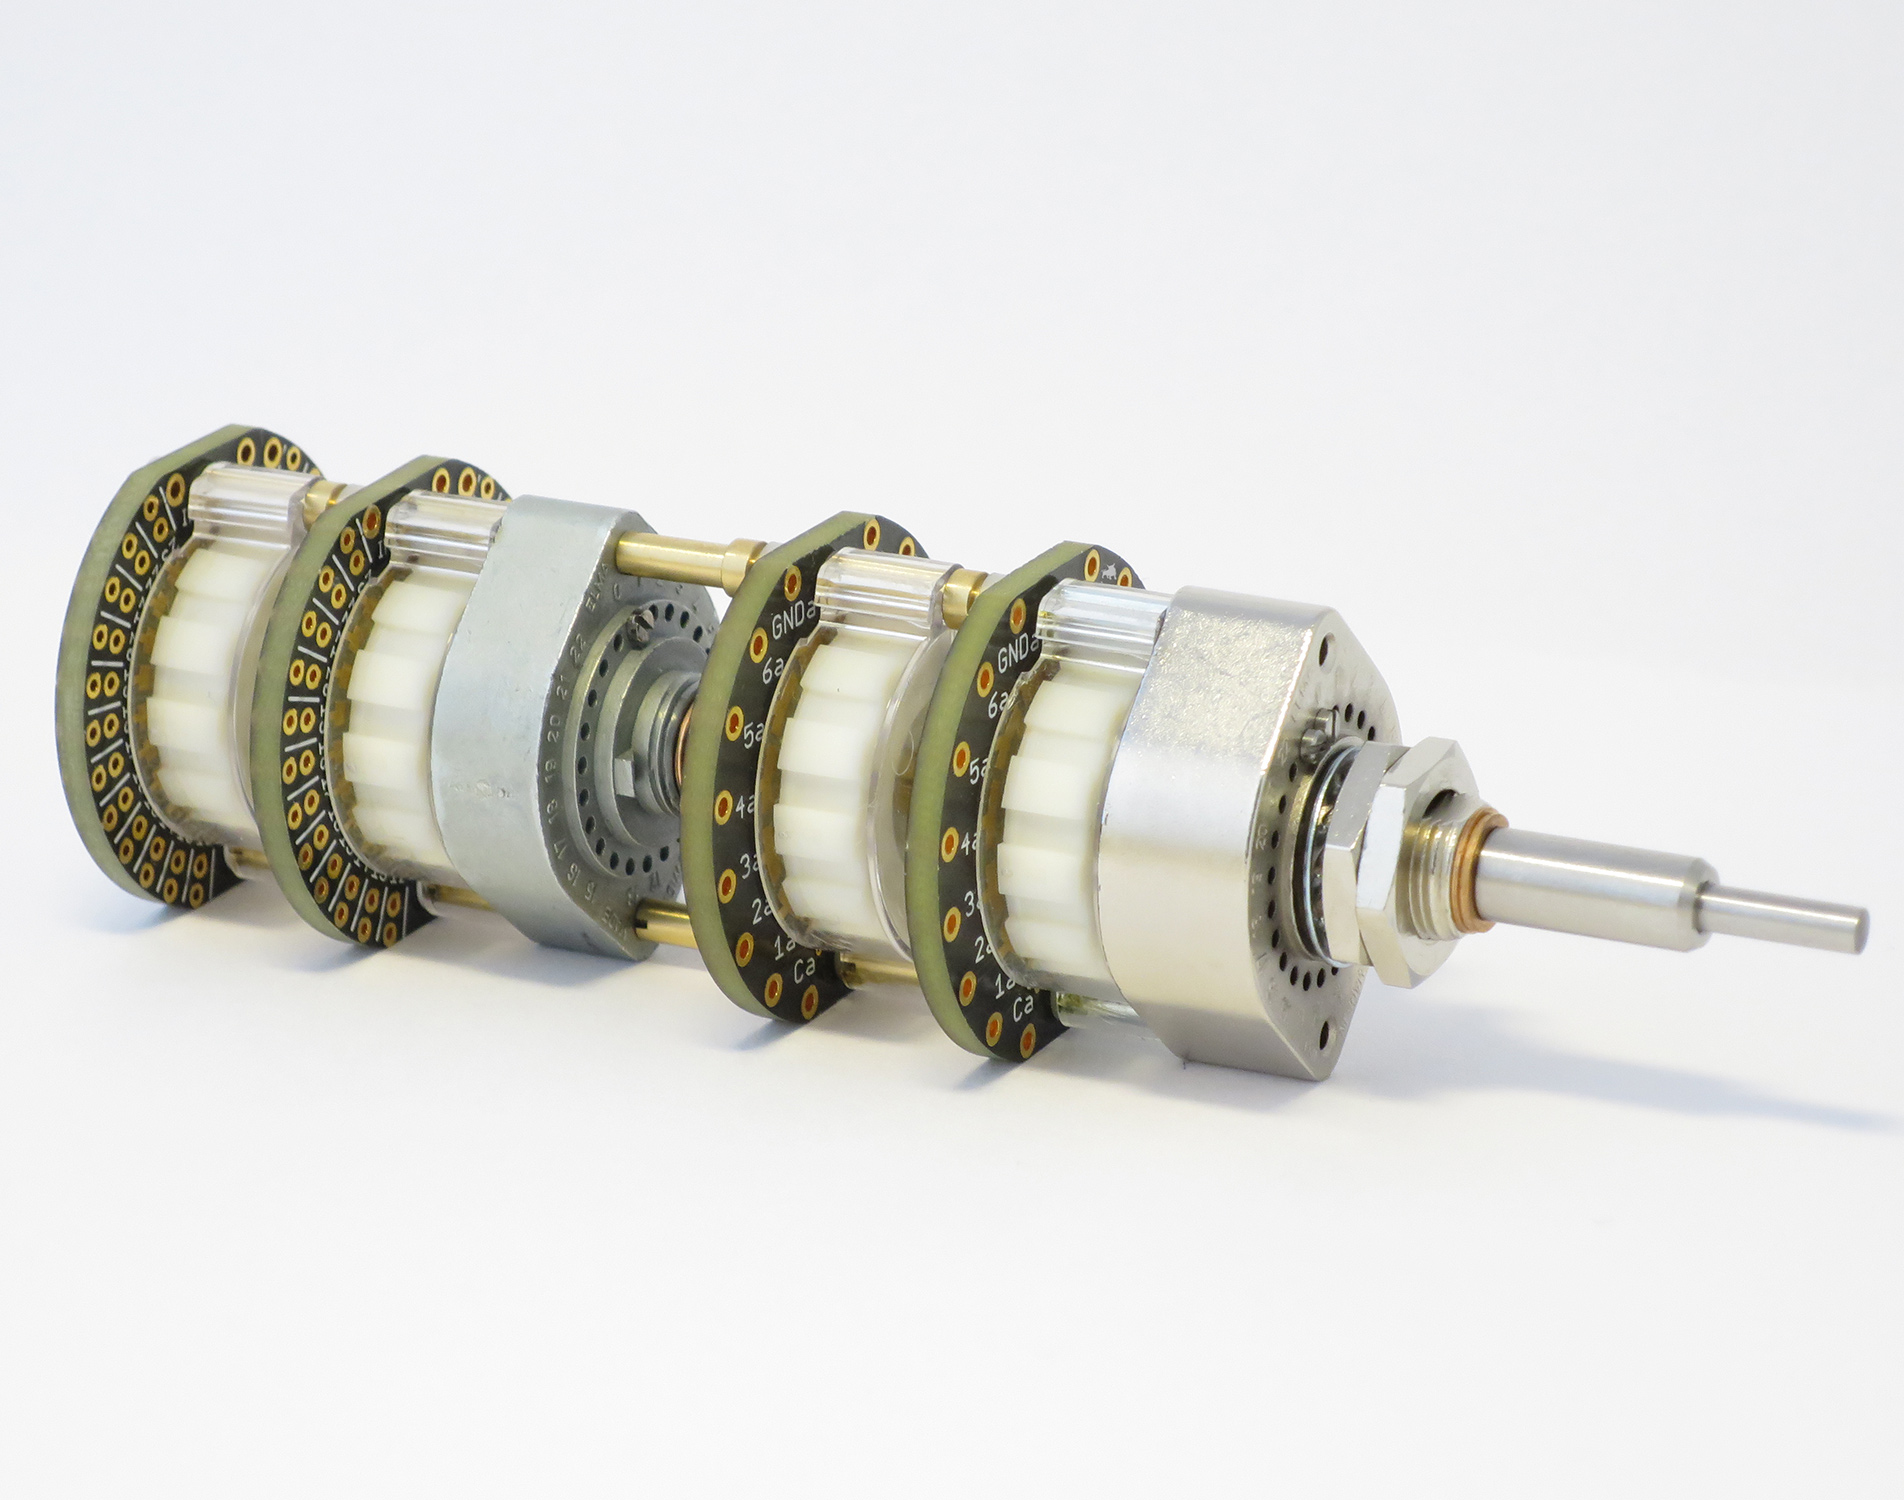 Elma A4 Concentric rotary switch